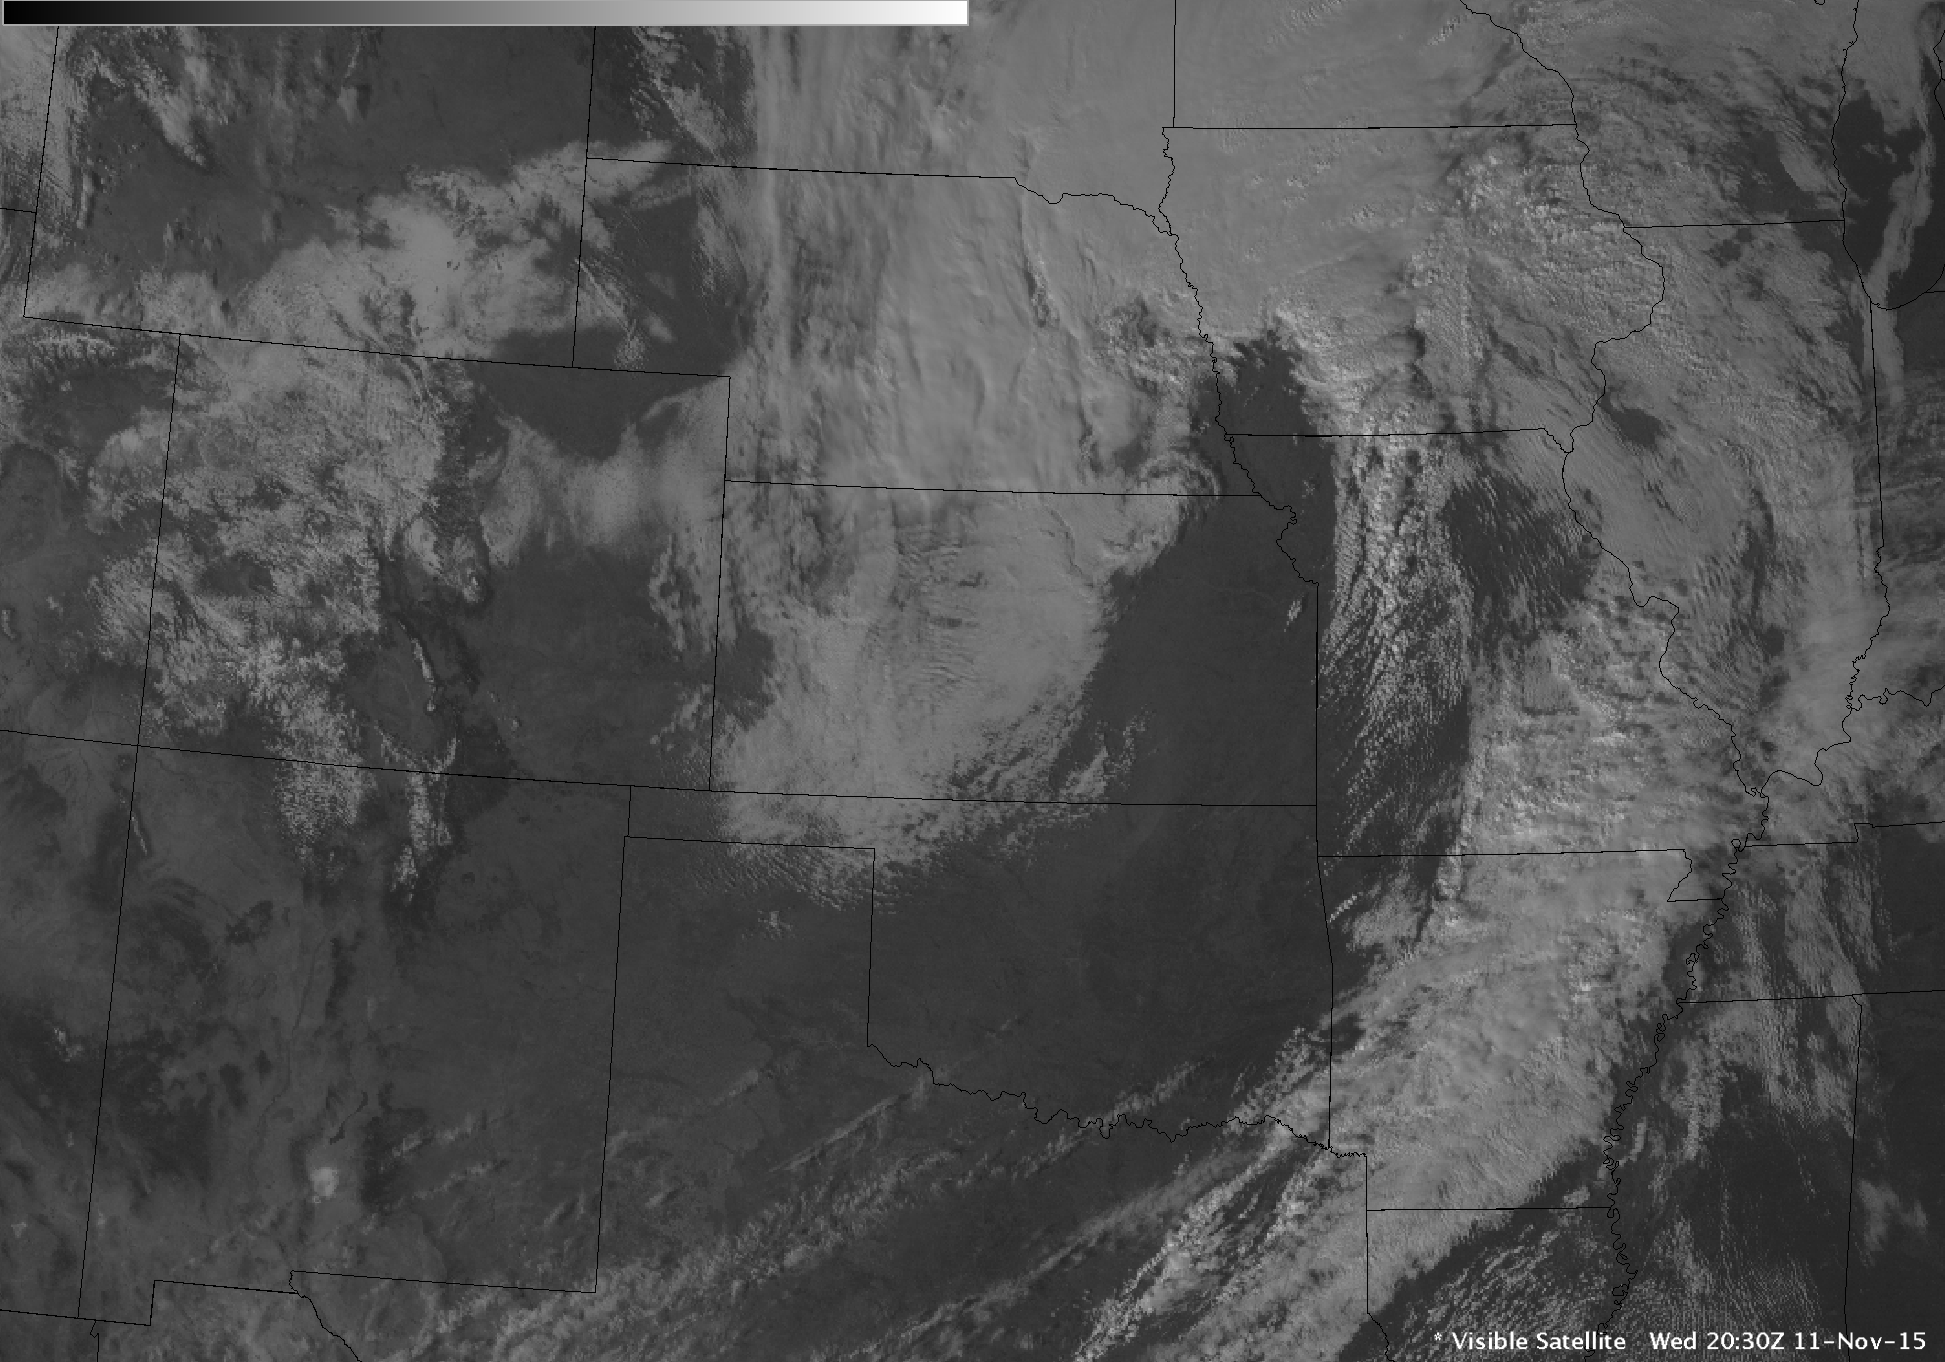 GOES-13 Visible (0.63 µm) images [click to play animation]